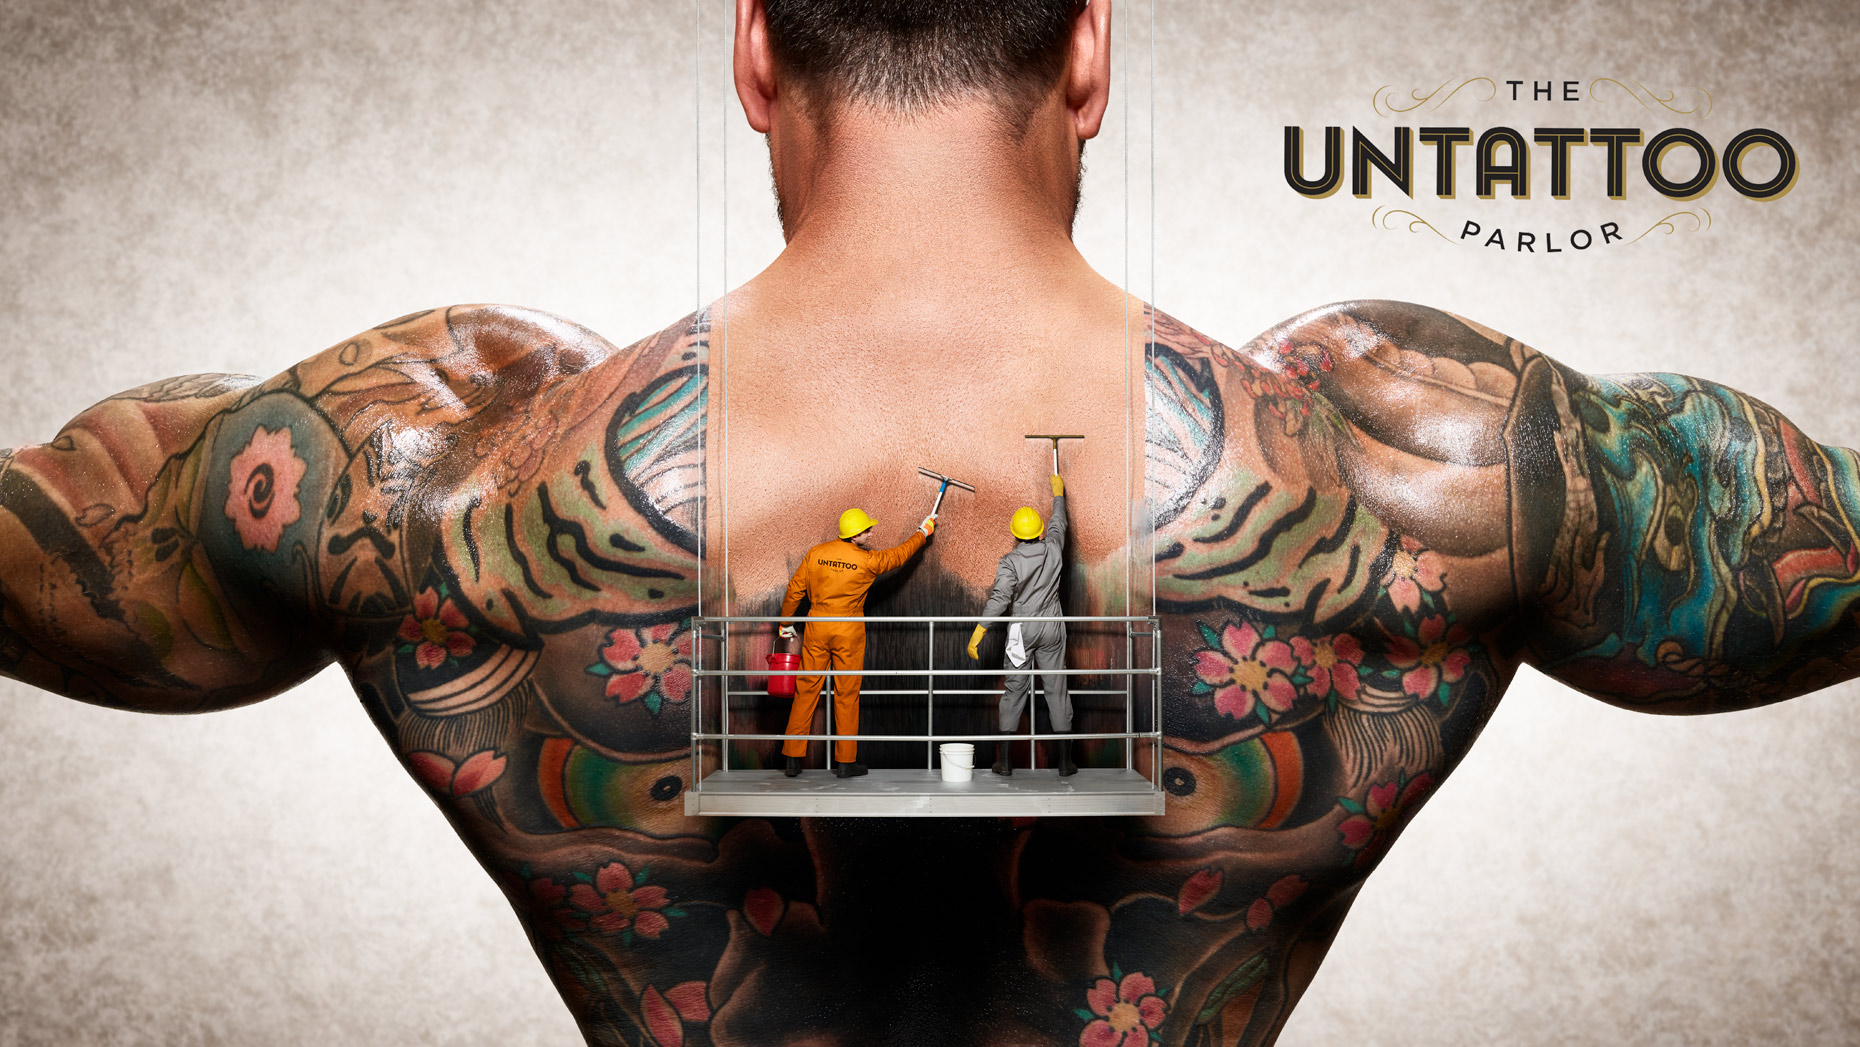 Untattoo Parlor Image Composite, Effects and Retouching